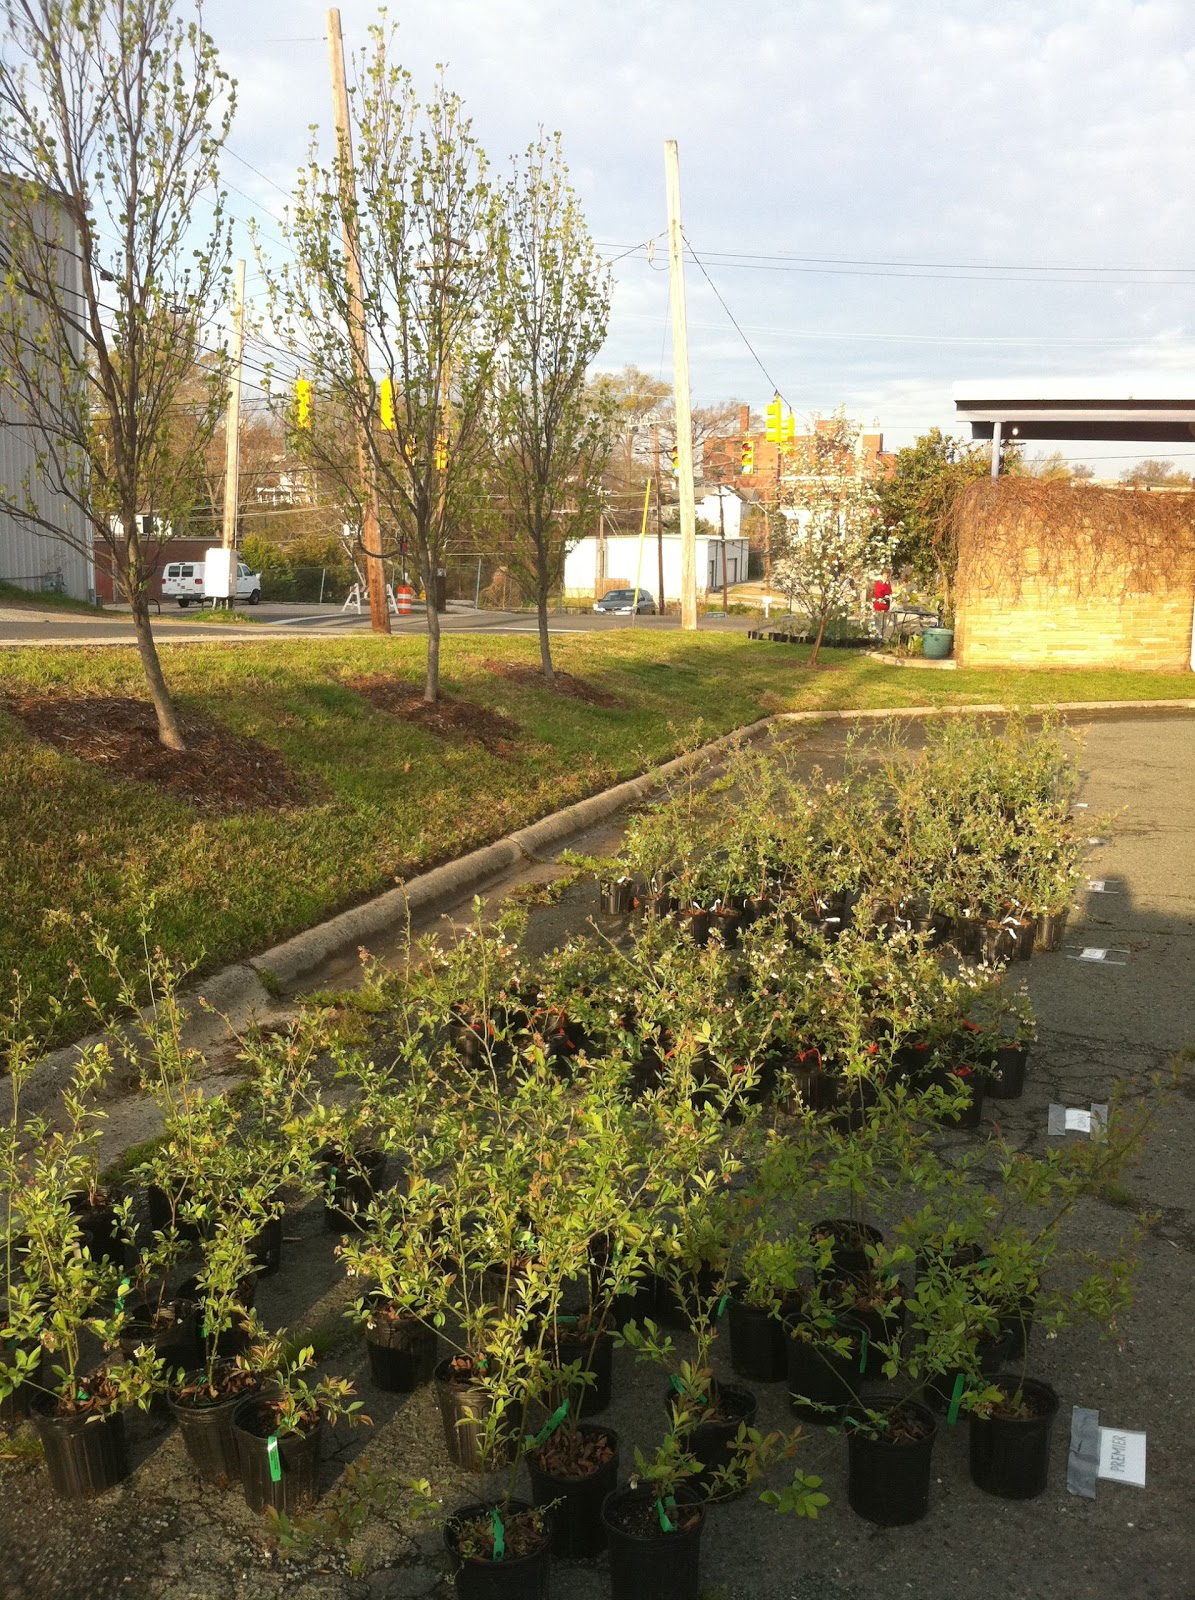 Finch Plants For And Pickup At Club Blvd Elementary S First Annual Blueberry Bush Fundraiser Held Two Weeks Ago